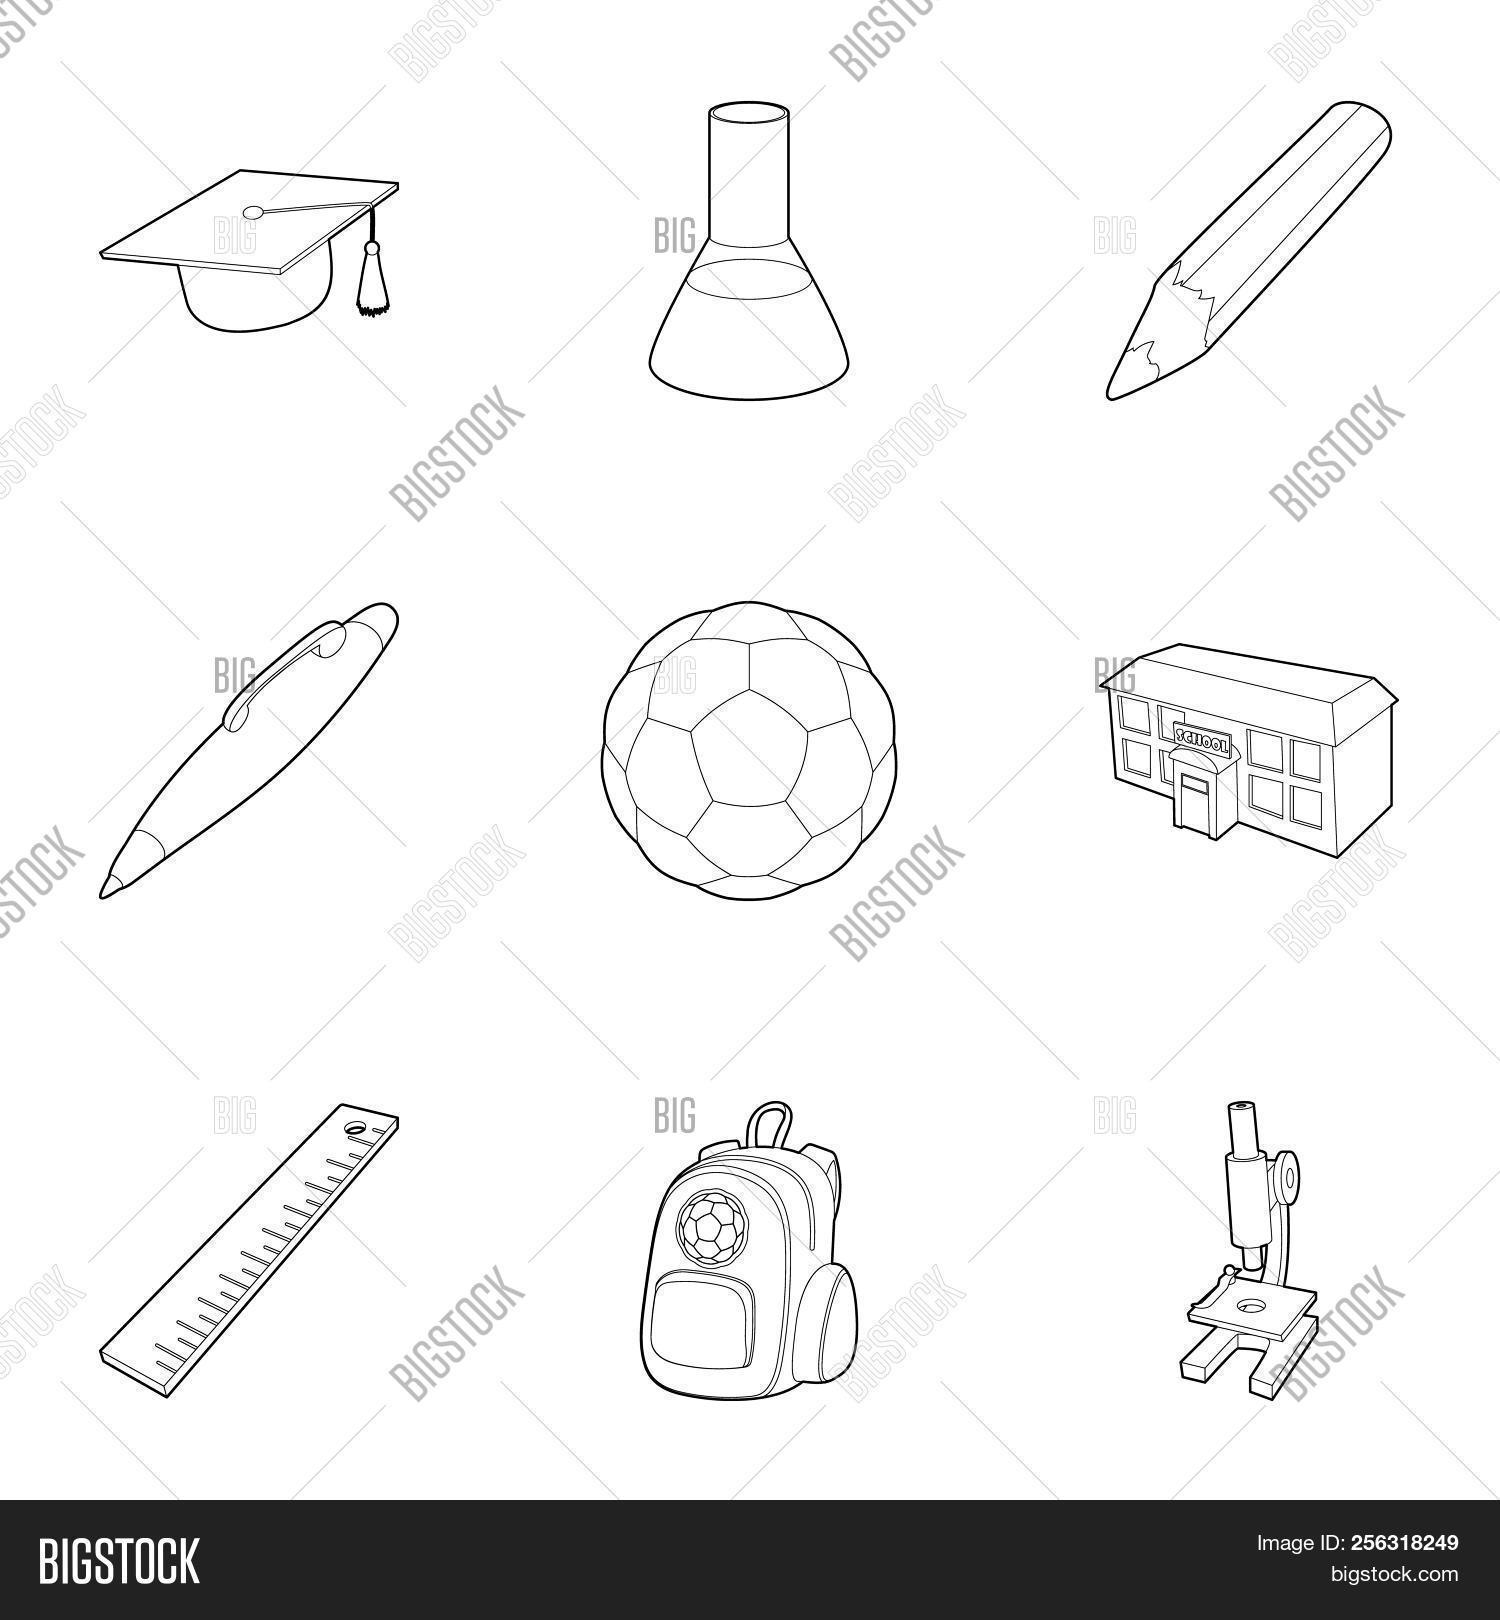 3d,9,academic,backpack,ball,black,collection,college,educate,education,flask,football,grade,happy,hat,high,icon,illustration,institution,isolated,isometric,kid,knowledge,lab,learn,learning,line,microscope,modern,object,old,outline,pen,pencil,primary,public,ruler,school,schoolhouse,set,sign,structure,student,studying,symbol,teaching,thin,university,urban